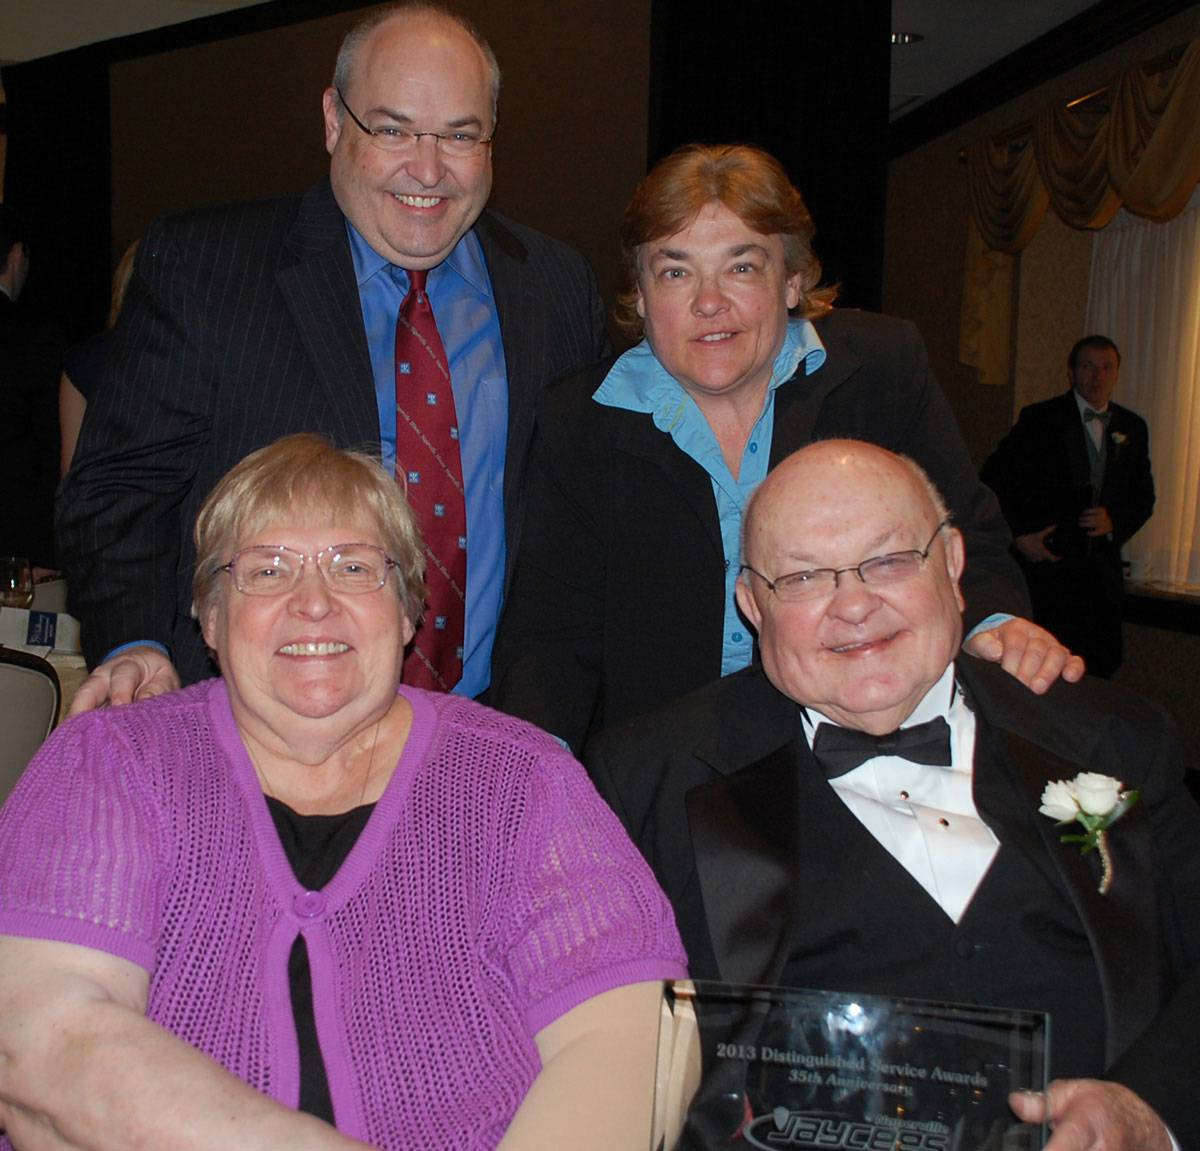 Naperville celebrates Pat Pradel as a  believer, supporter